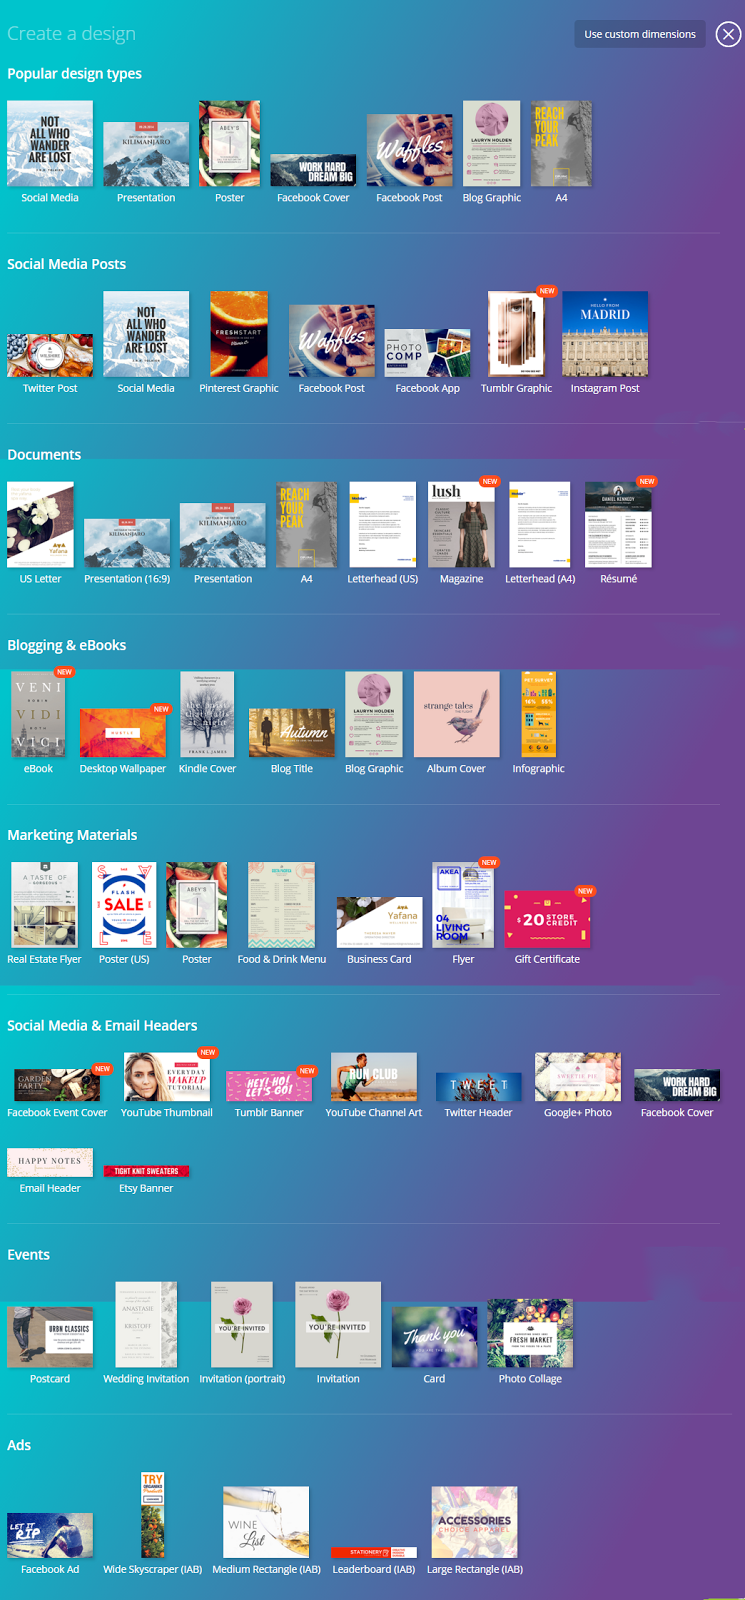 Canva graphic designing free tool